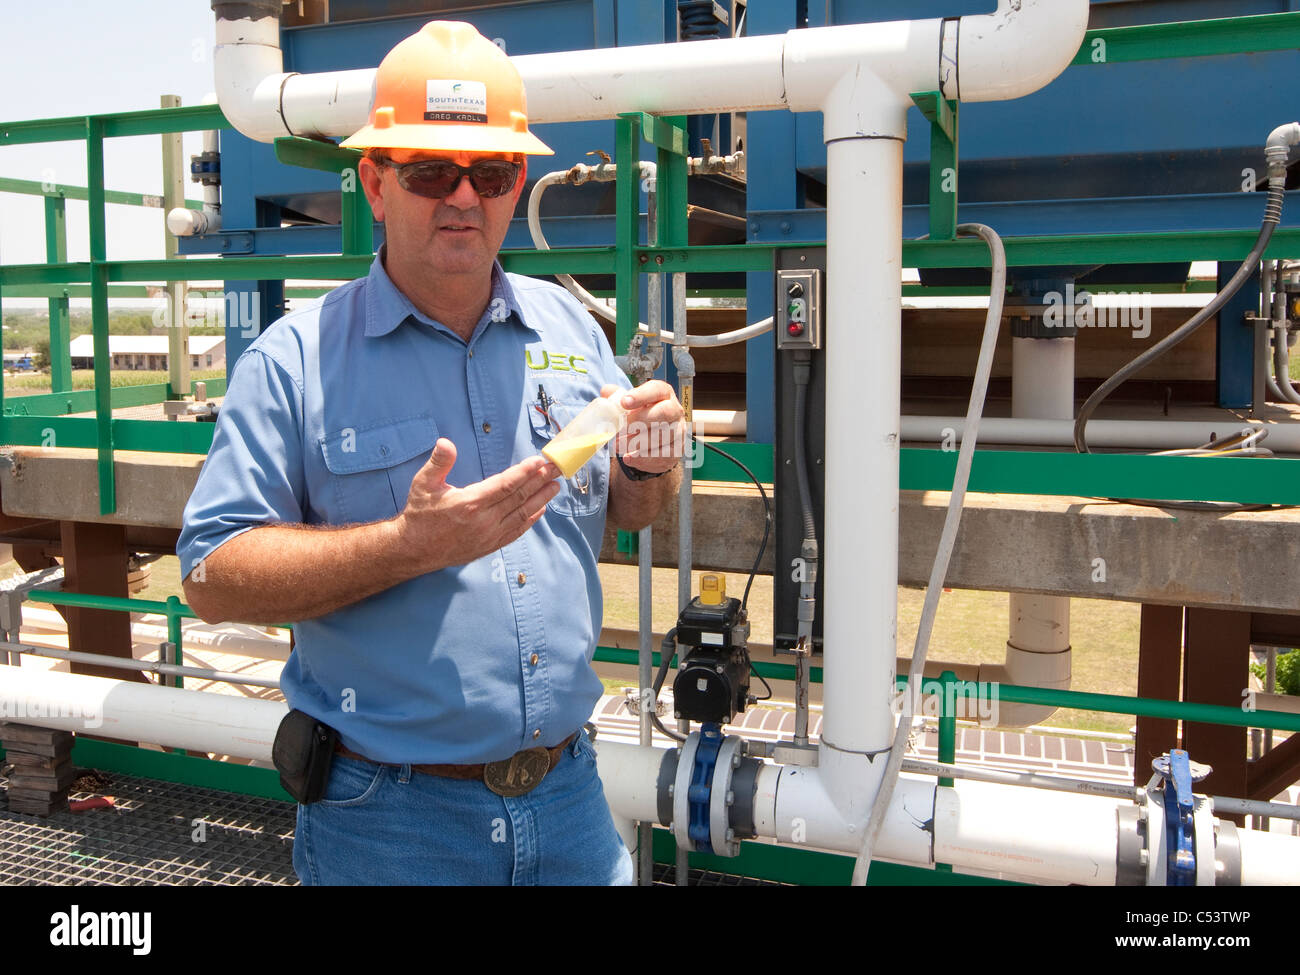 White male worker holds up a sample of processed Uranium at an Uranium processing plant in Texas Stock Photo